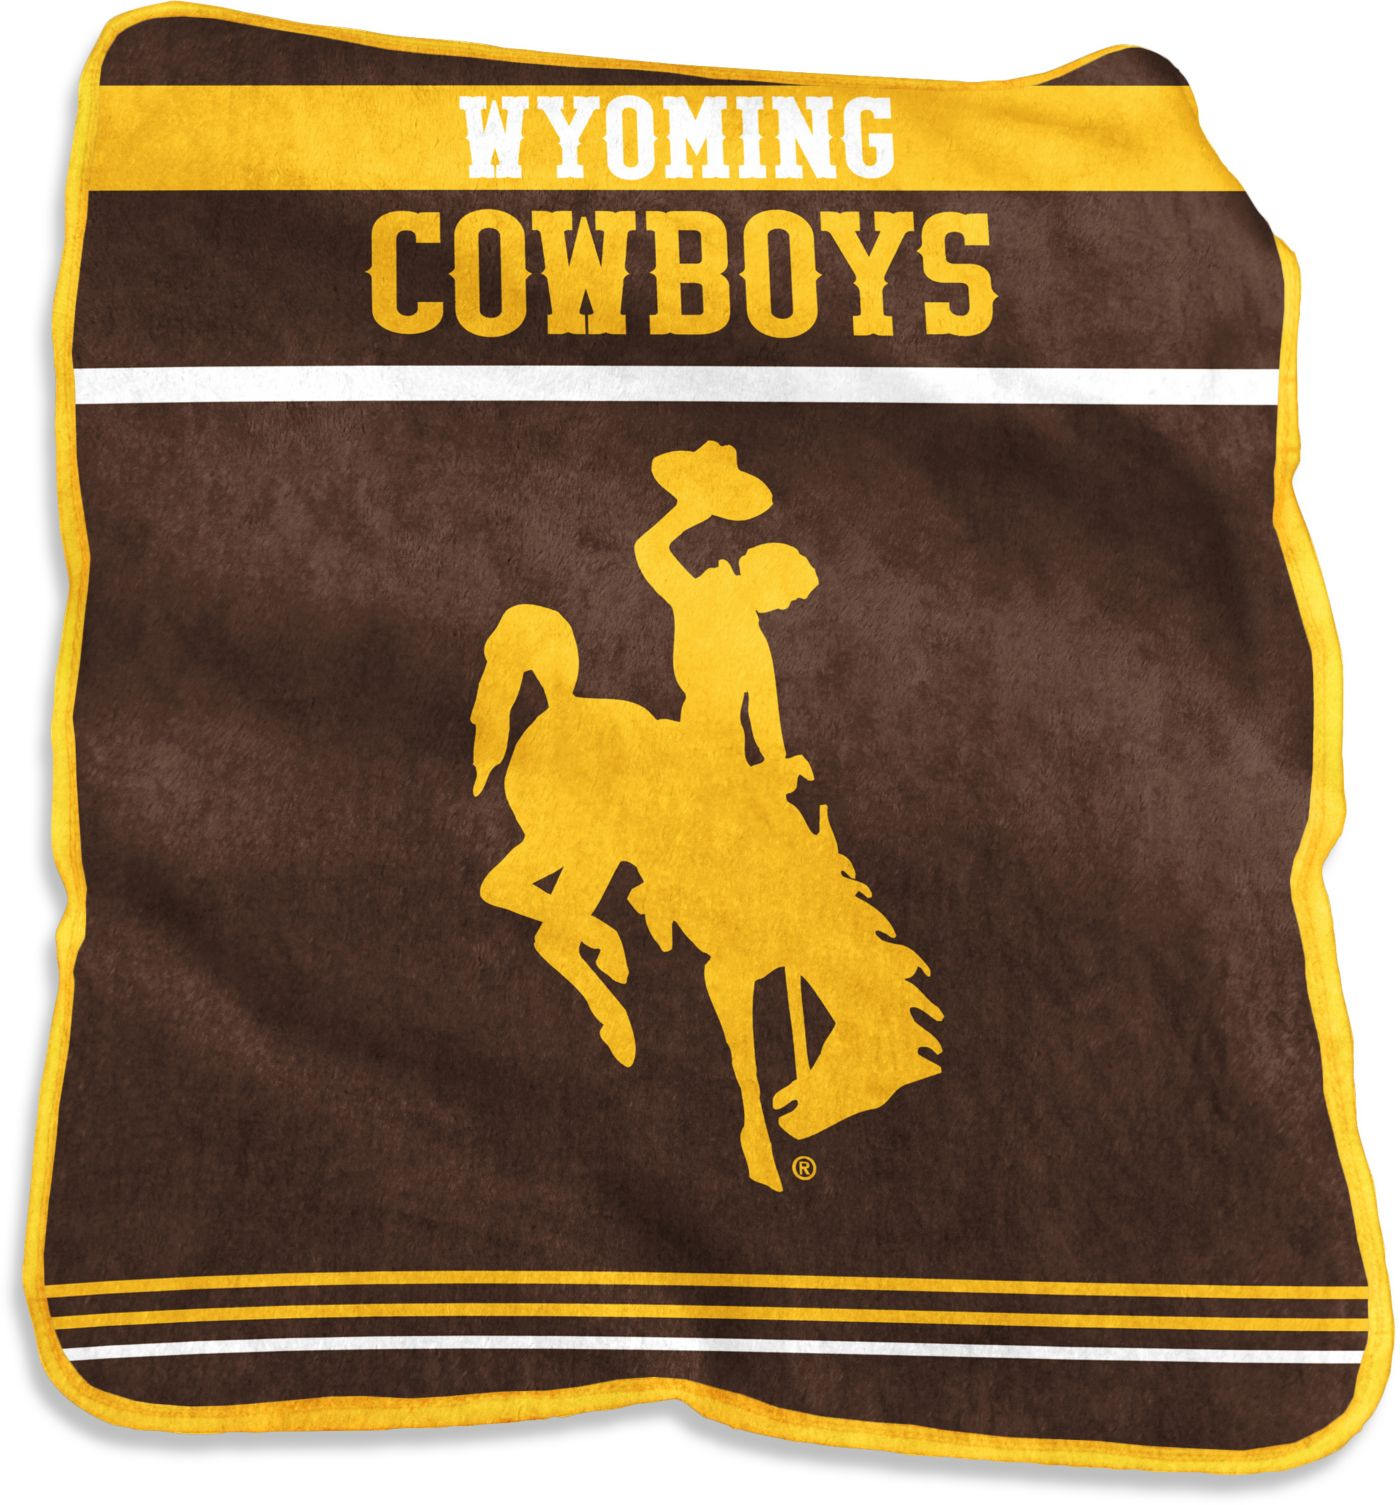 Wyoming Cowboys Game Day Throw Blanket